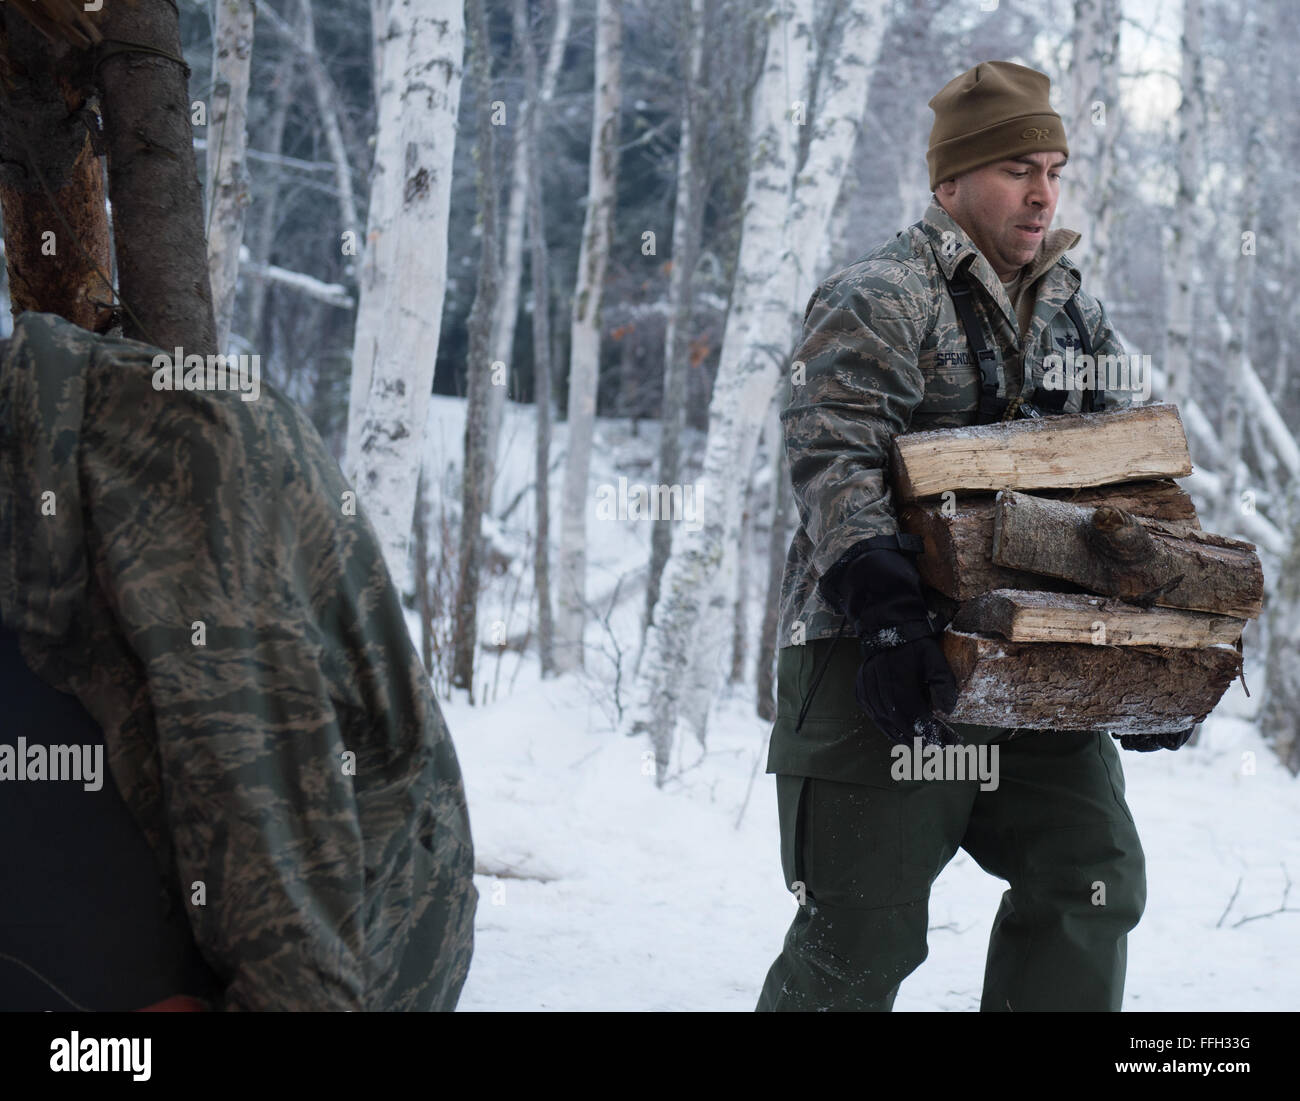 Capt. Bart Spendley, 274th Air Support Operation Squadron, air liaison officer, carries split wood to feed a fire - Stock Image